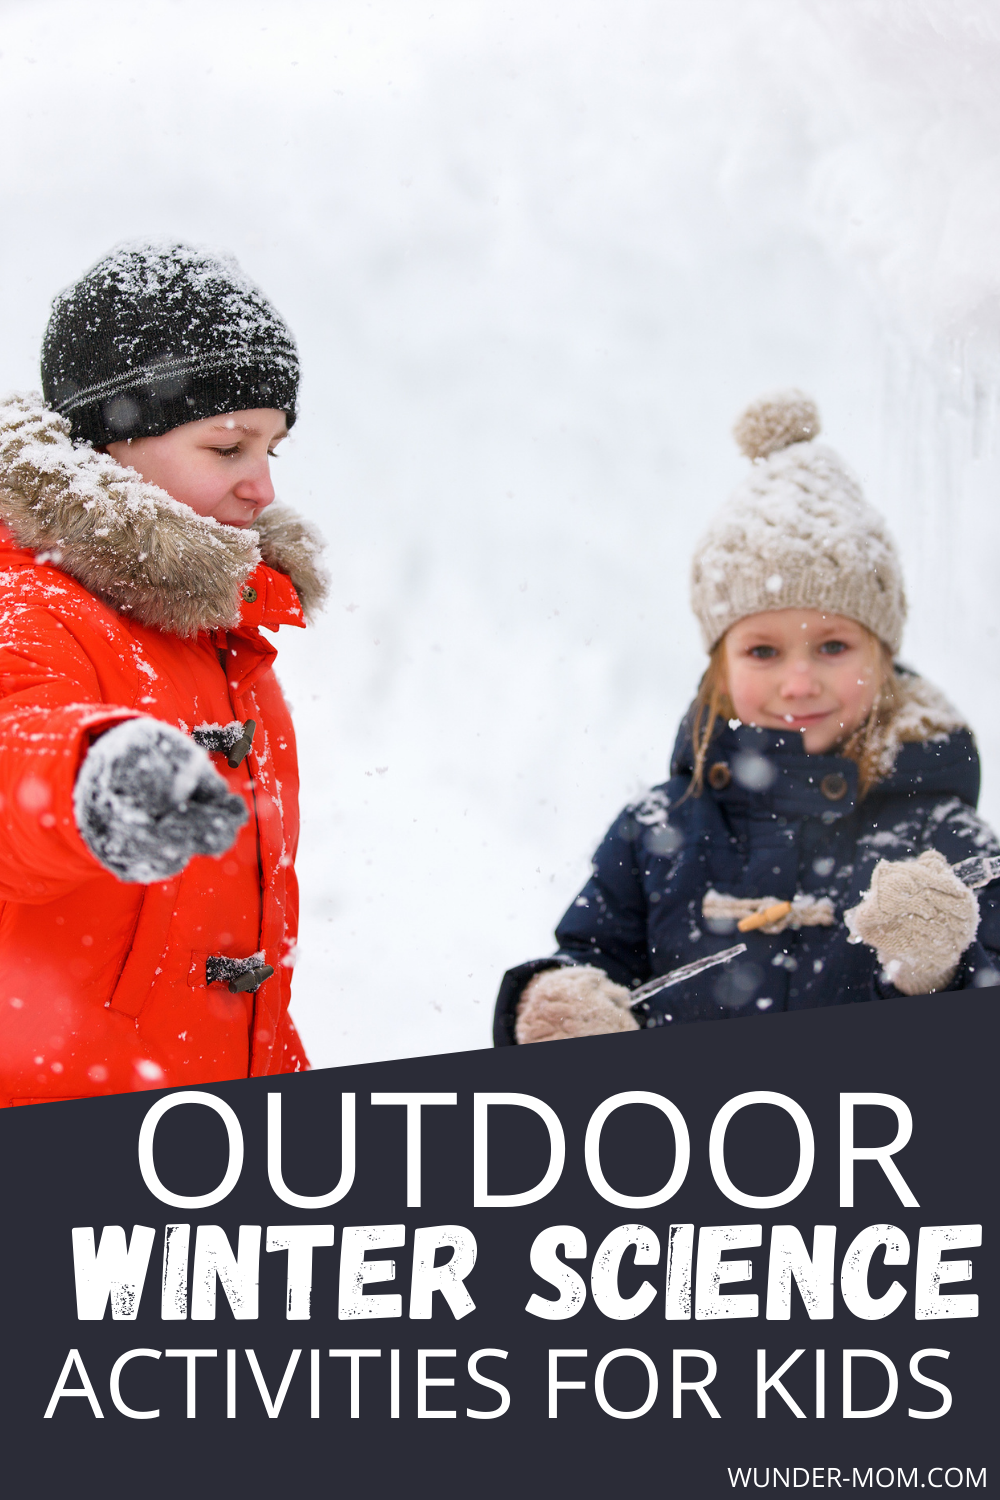 Outdoor winter science activities for kids